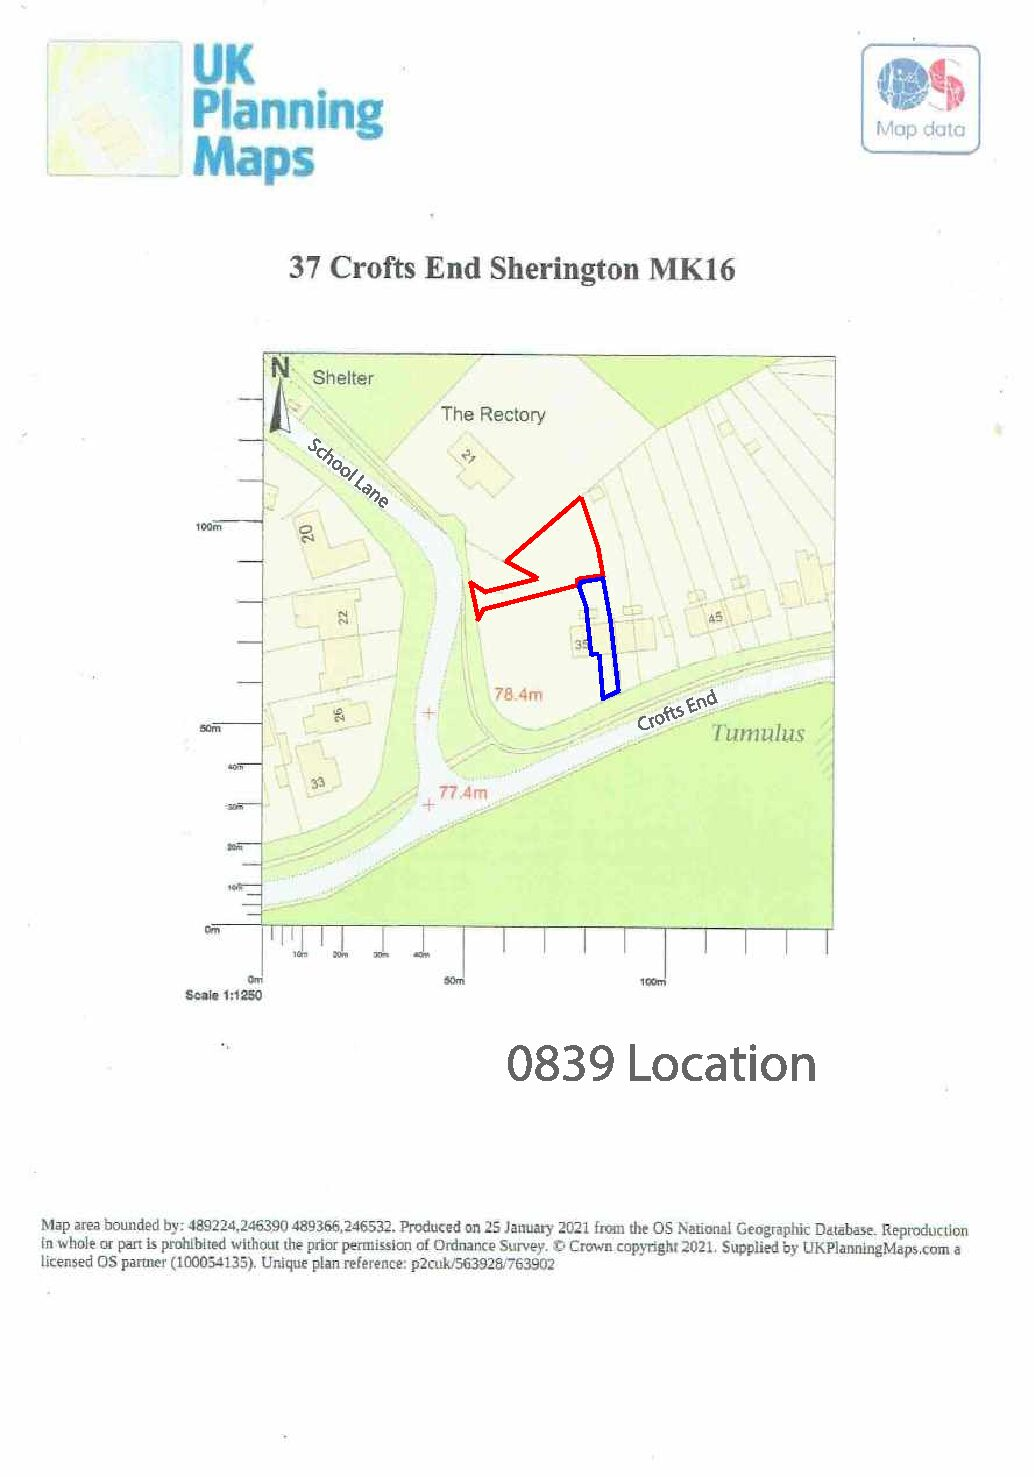 21/01272/FUL | Erection of One x 2-bed bungalow with parking and access off School Lane (resubmission 21/00319/FUL) | 37 Crofts End Sherington Newport Pagnell MK16 9ND